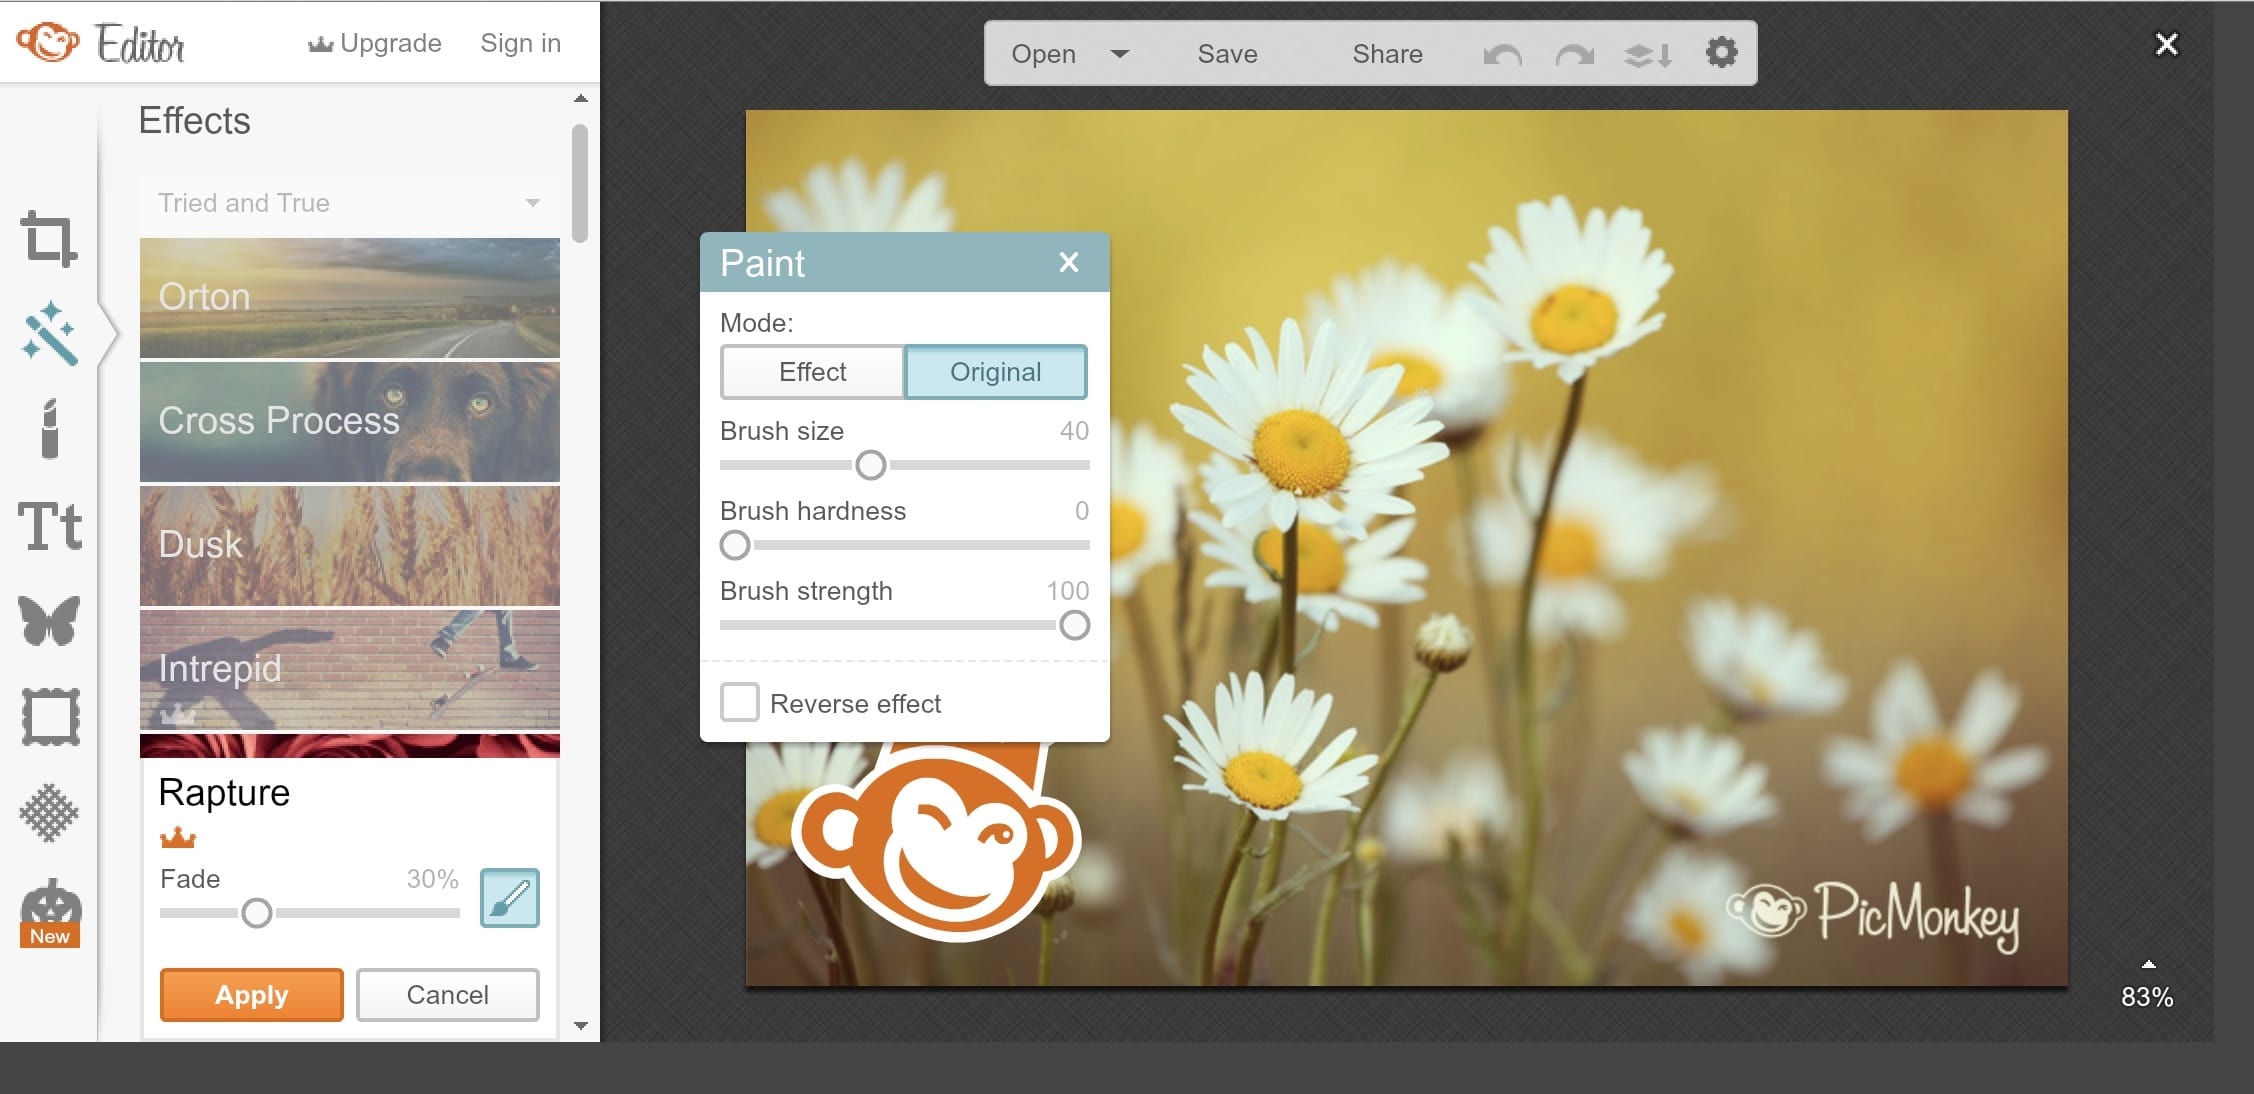 how to add layers on picmonkey